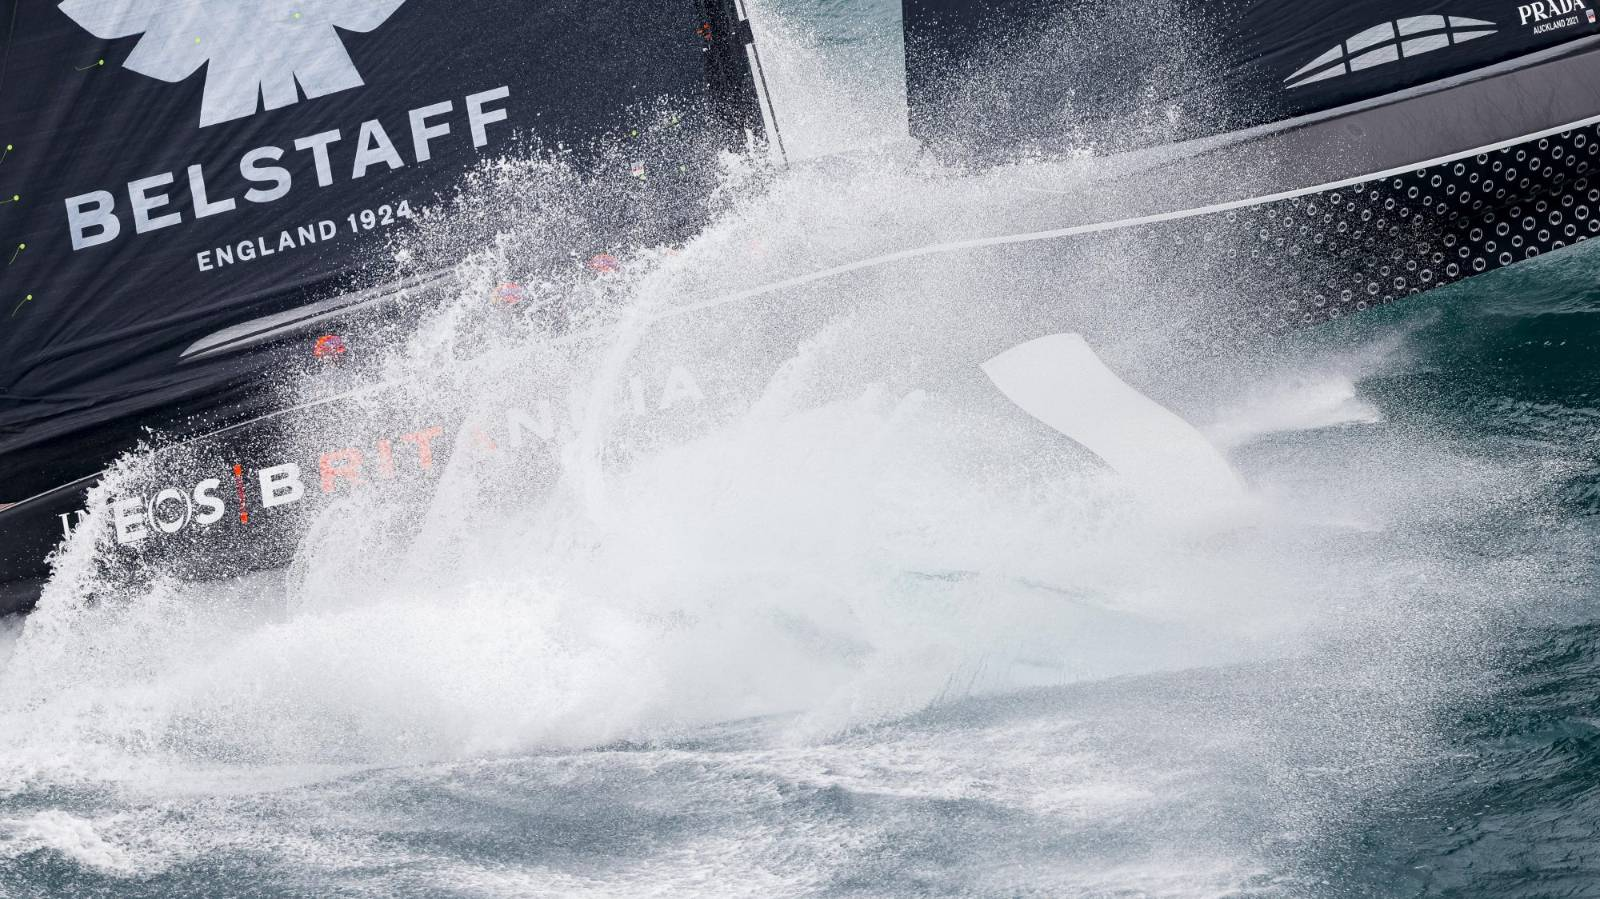 Ben Ainslie reveals Britannia nearly wiped out before American Magic's 'horrific' capsize